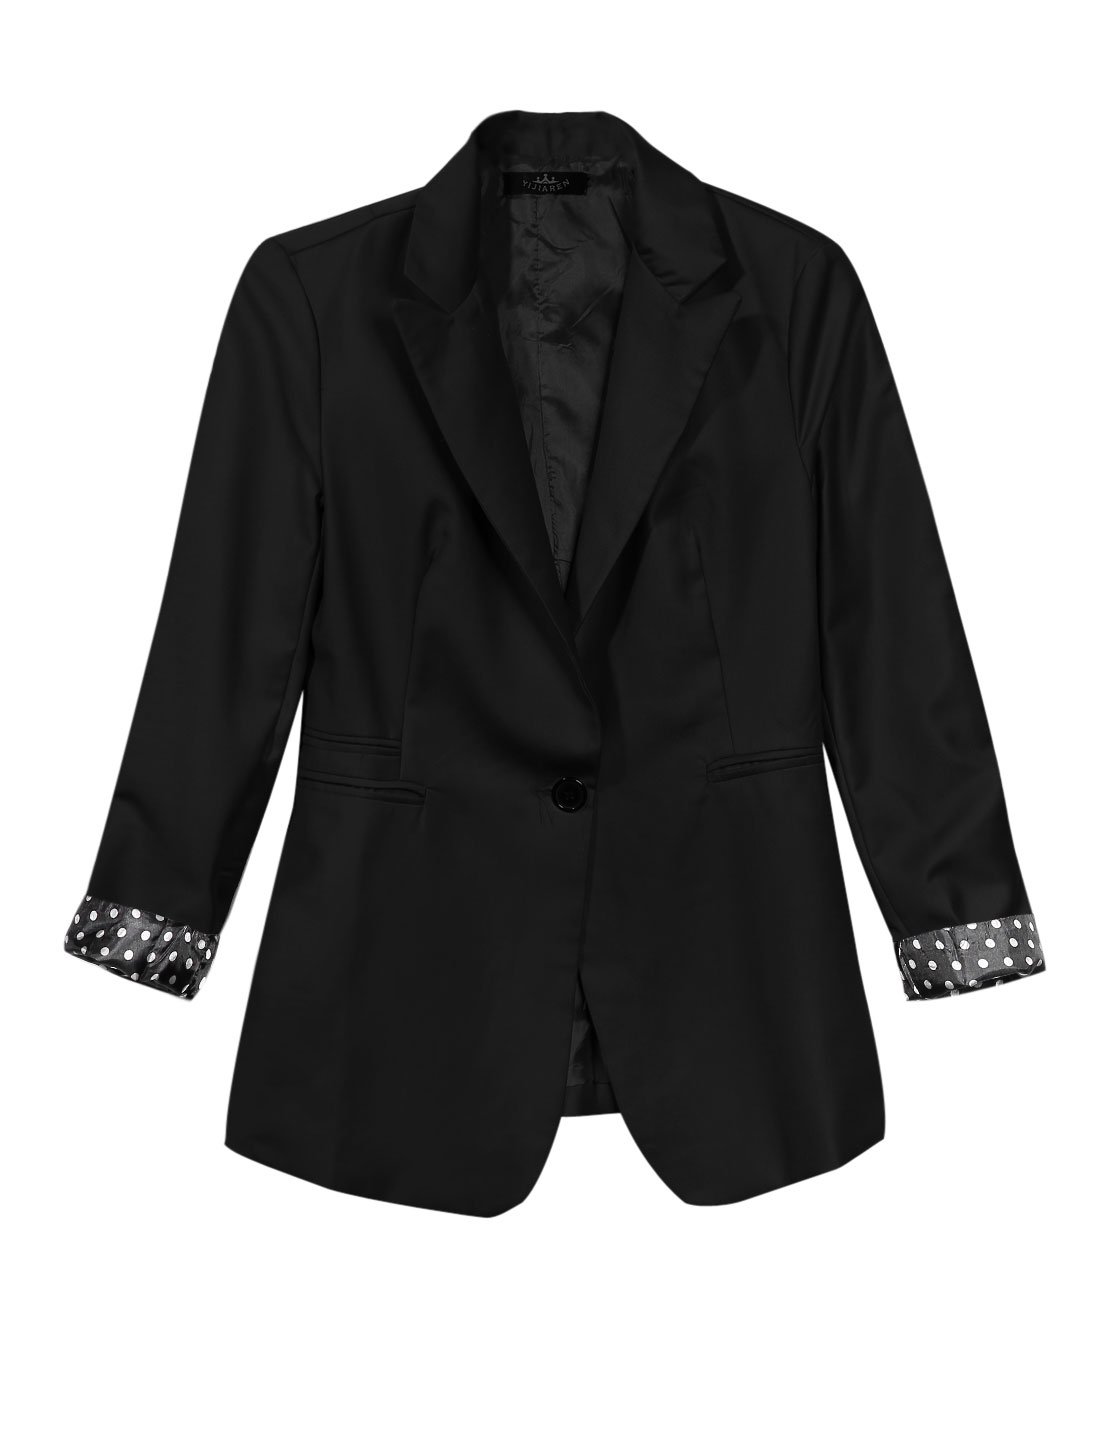 Lady Peaked Lapel Long Sleeve Casual Design Jacket Black M